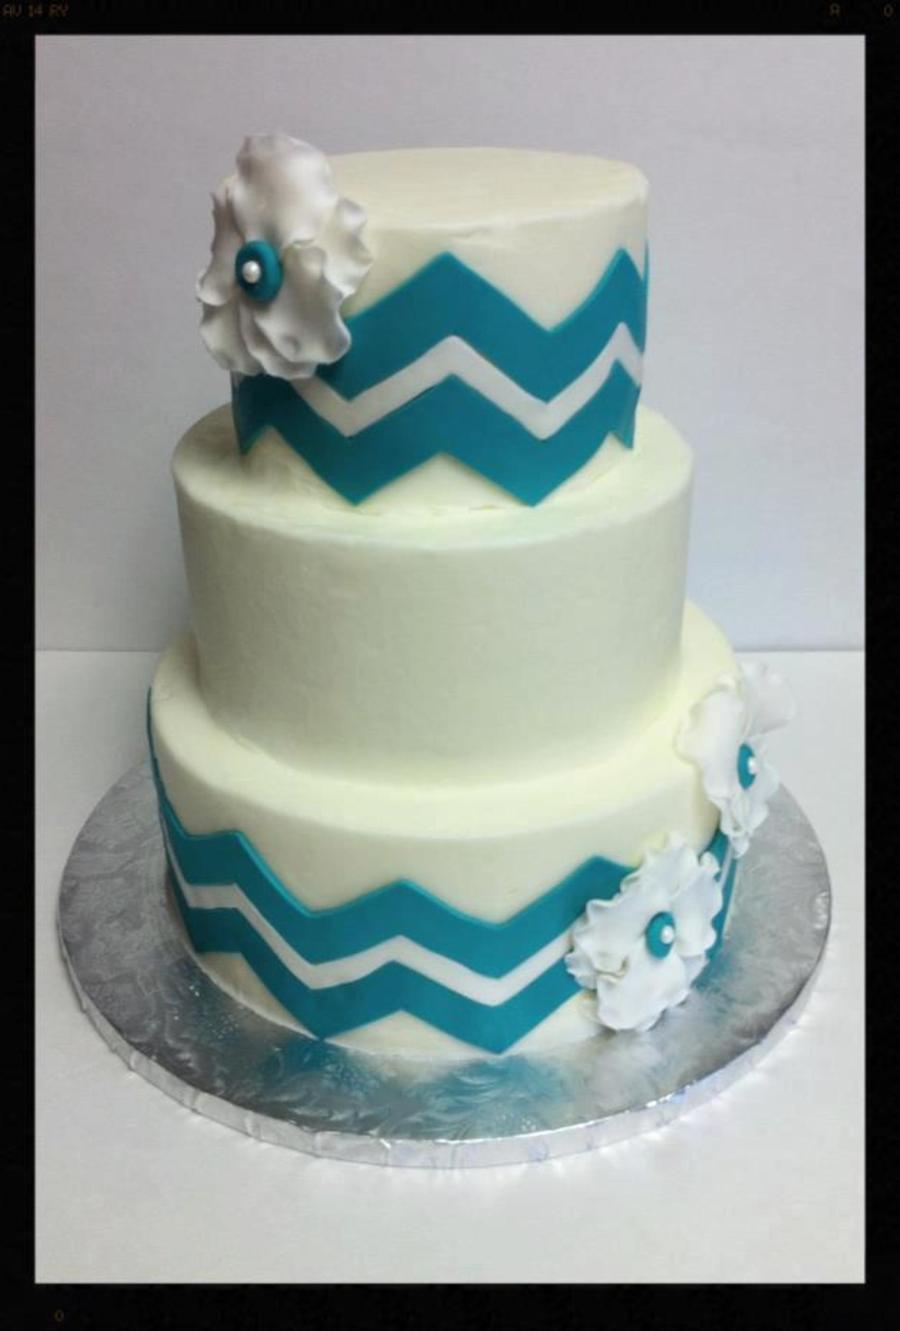 Buttercream Cake With Fondant Chevron Stripes And Fondant Fantasy Flowers on Cake Central